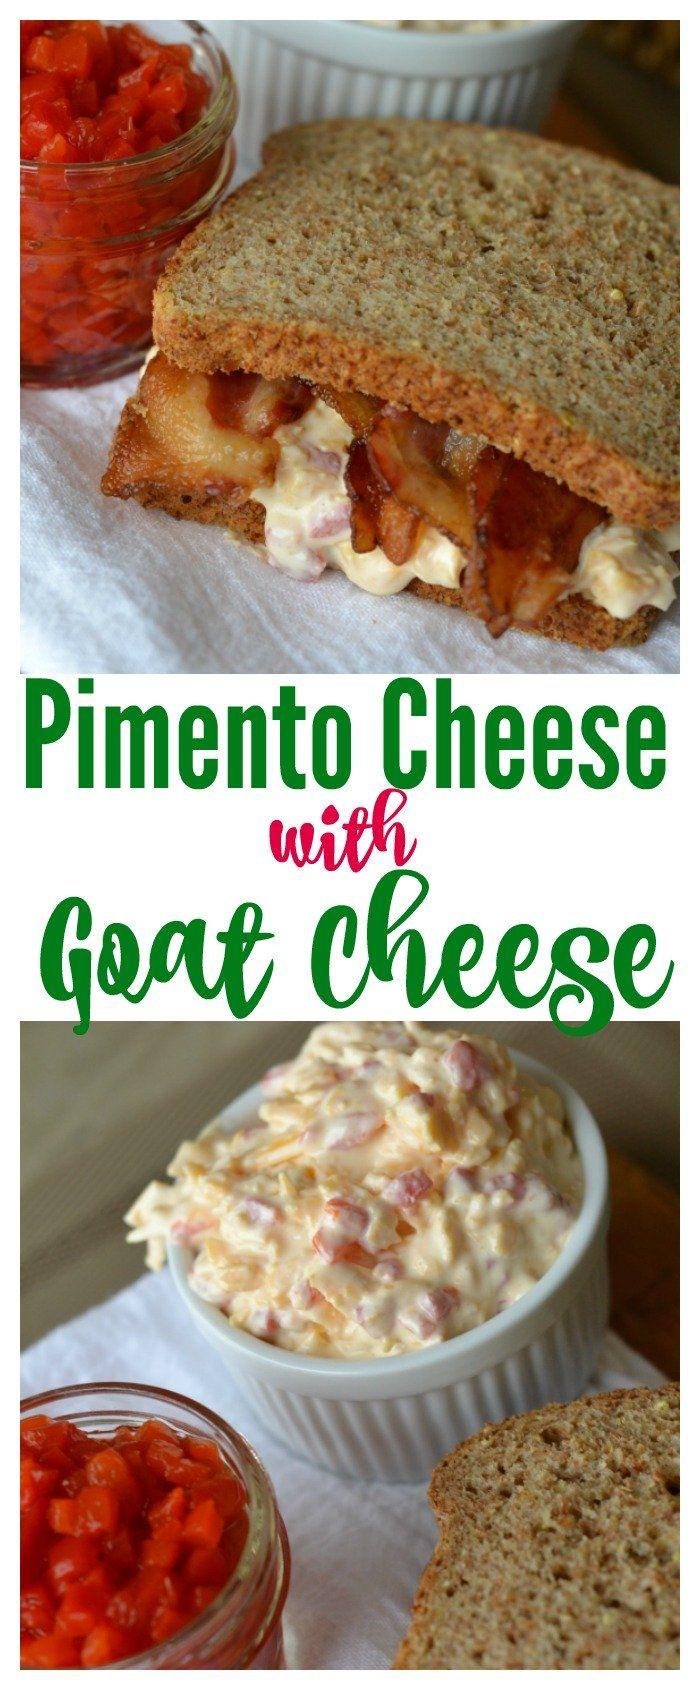 Pimento Cheese with goat cheese is a yummy creamy pimento cheese recipe. This recipe can be served as a pimento cheese sandwich or a pimento cheese spread on crackers.